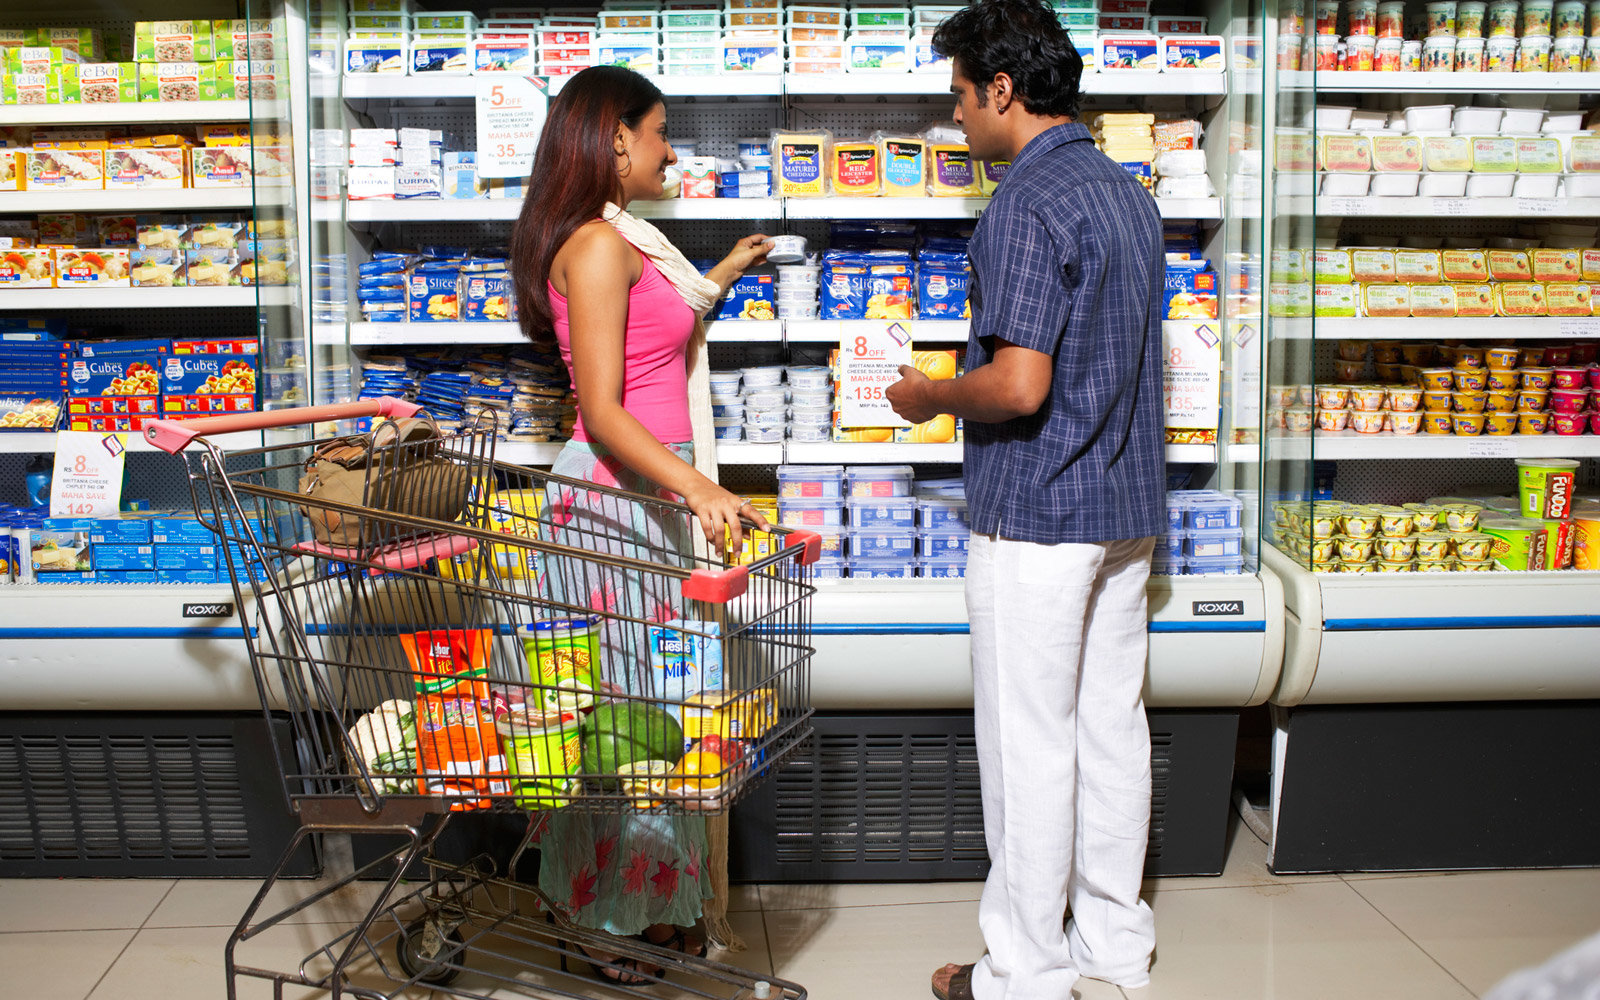 couple-grocery-shopping-CUTBACK0717.jpg